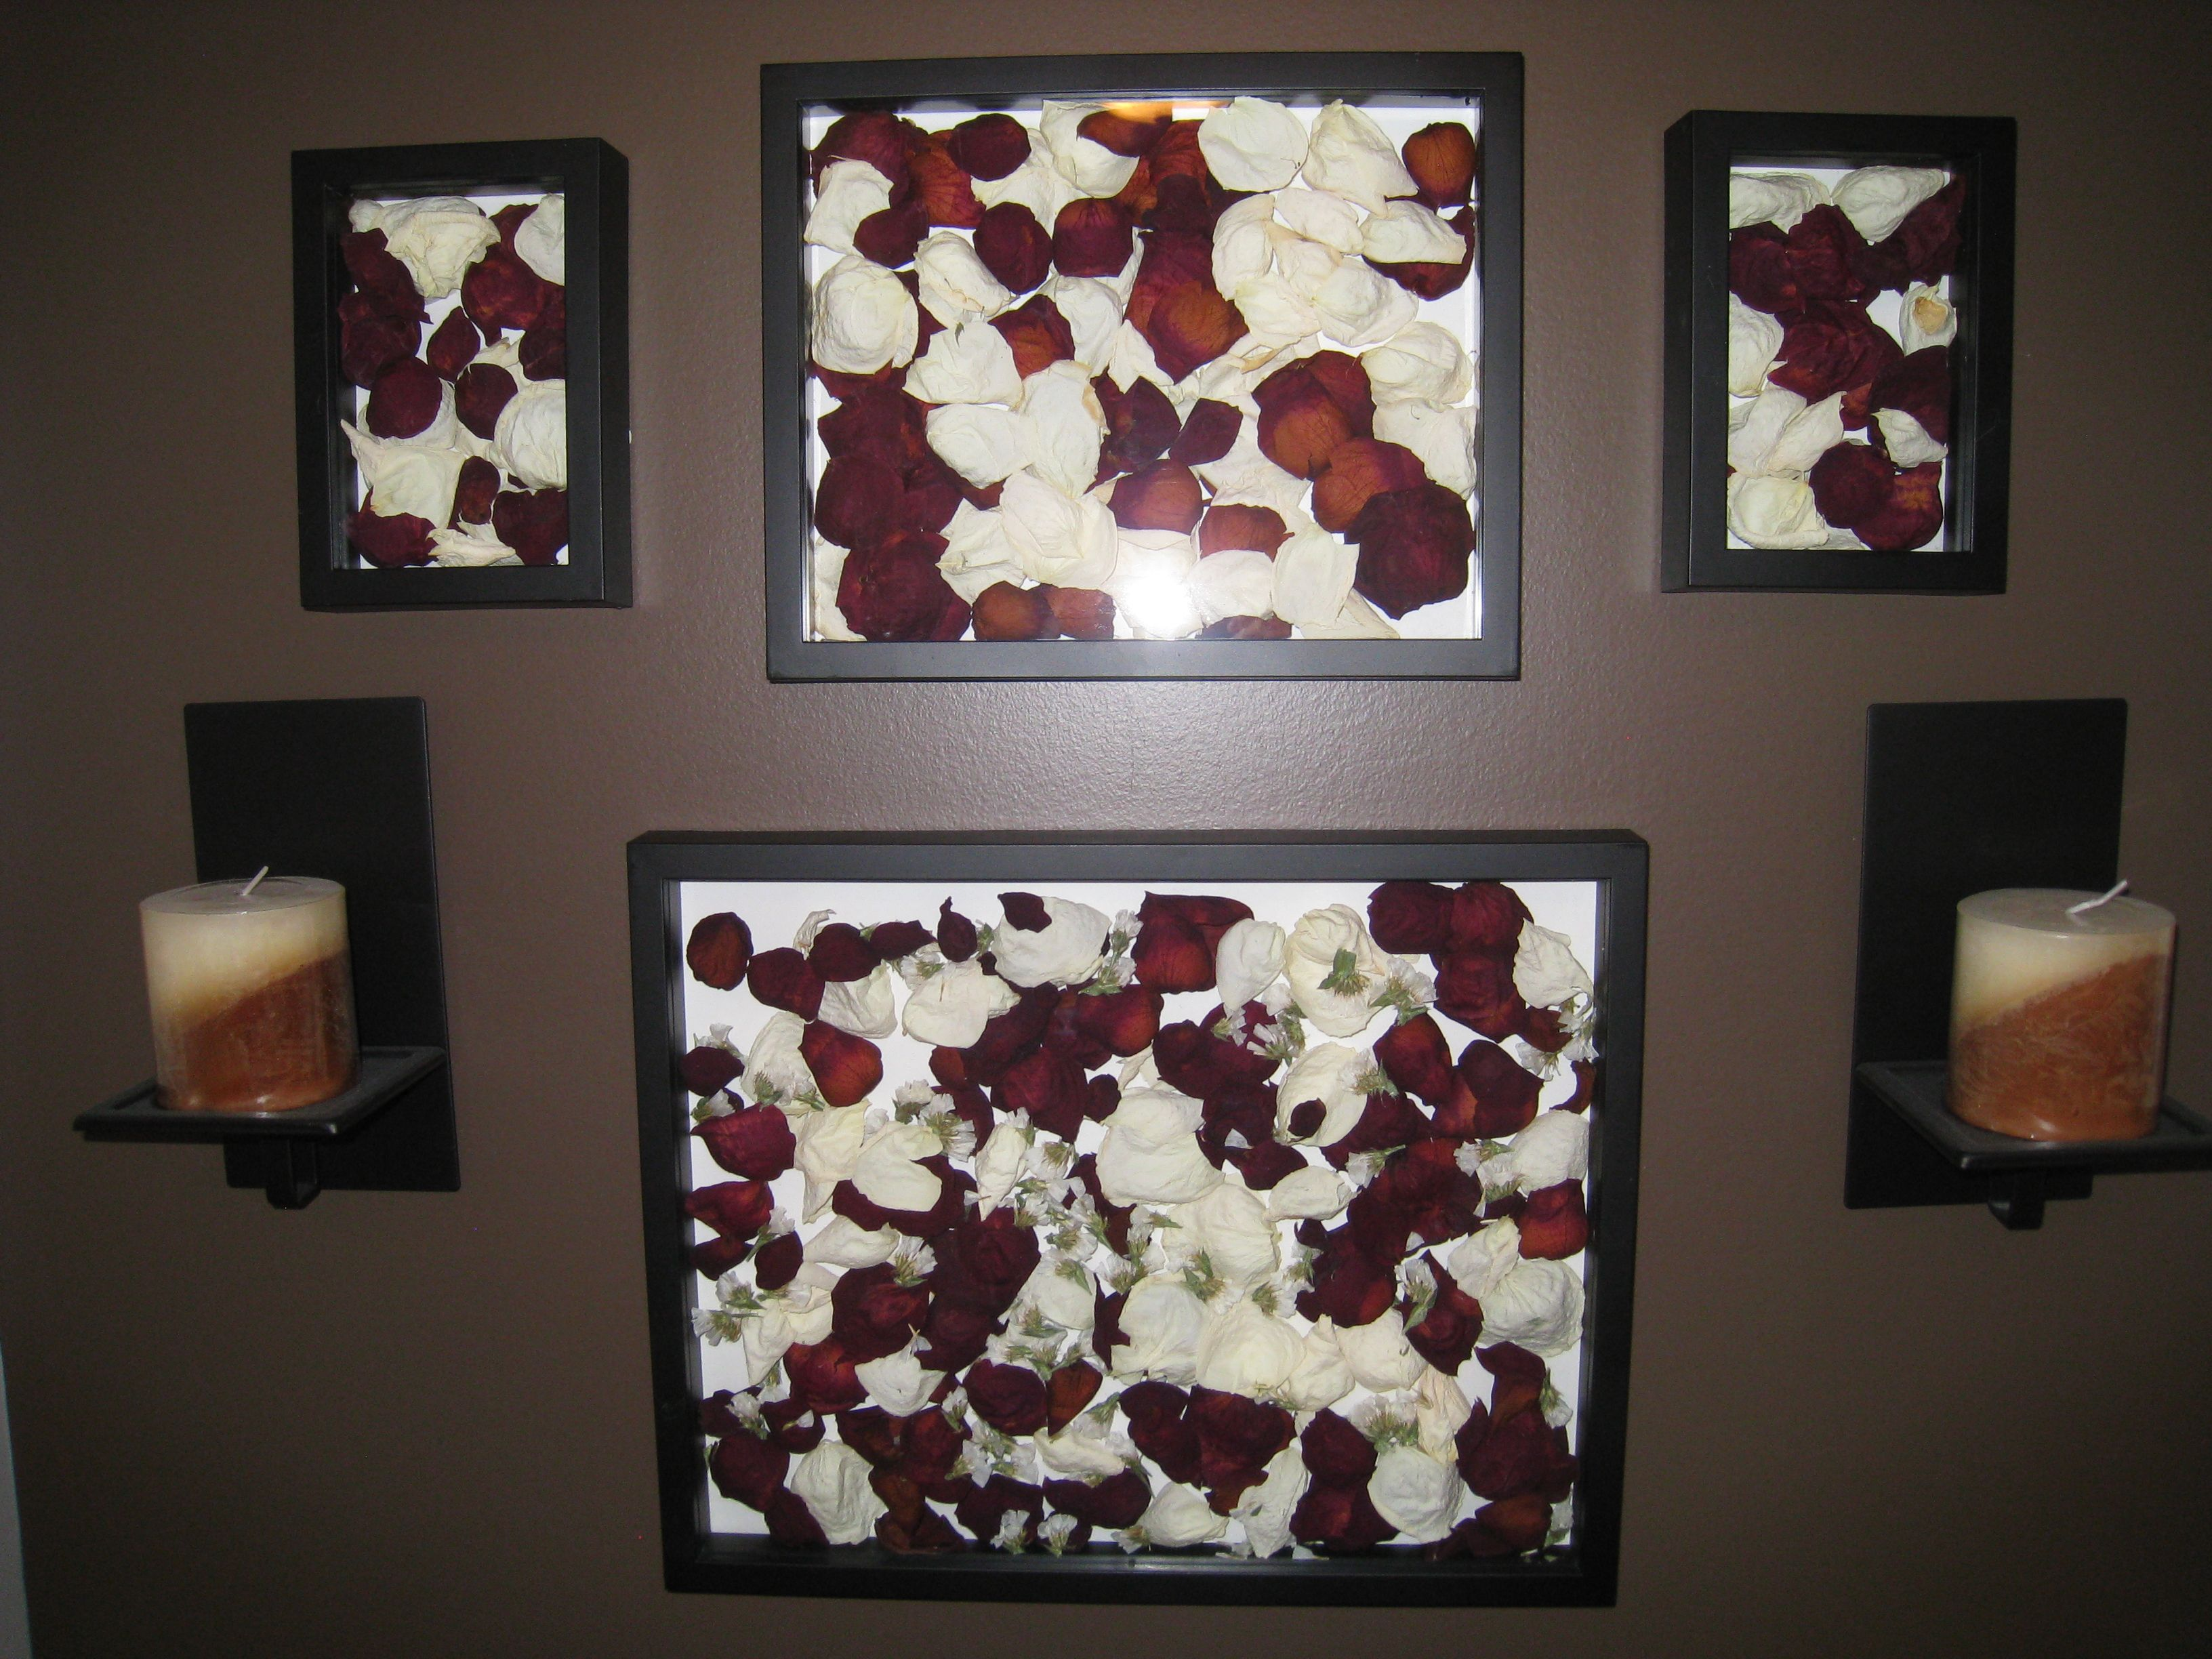 Dried rose petals in a deep frame